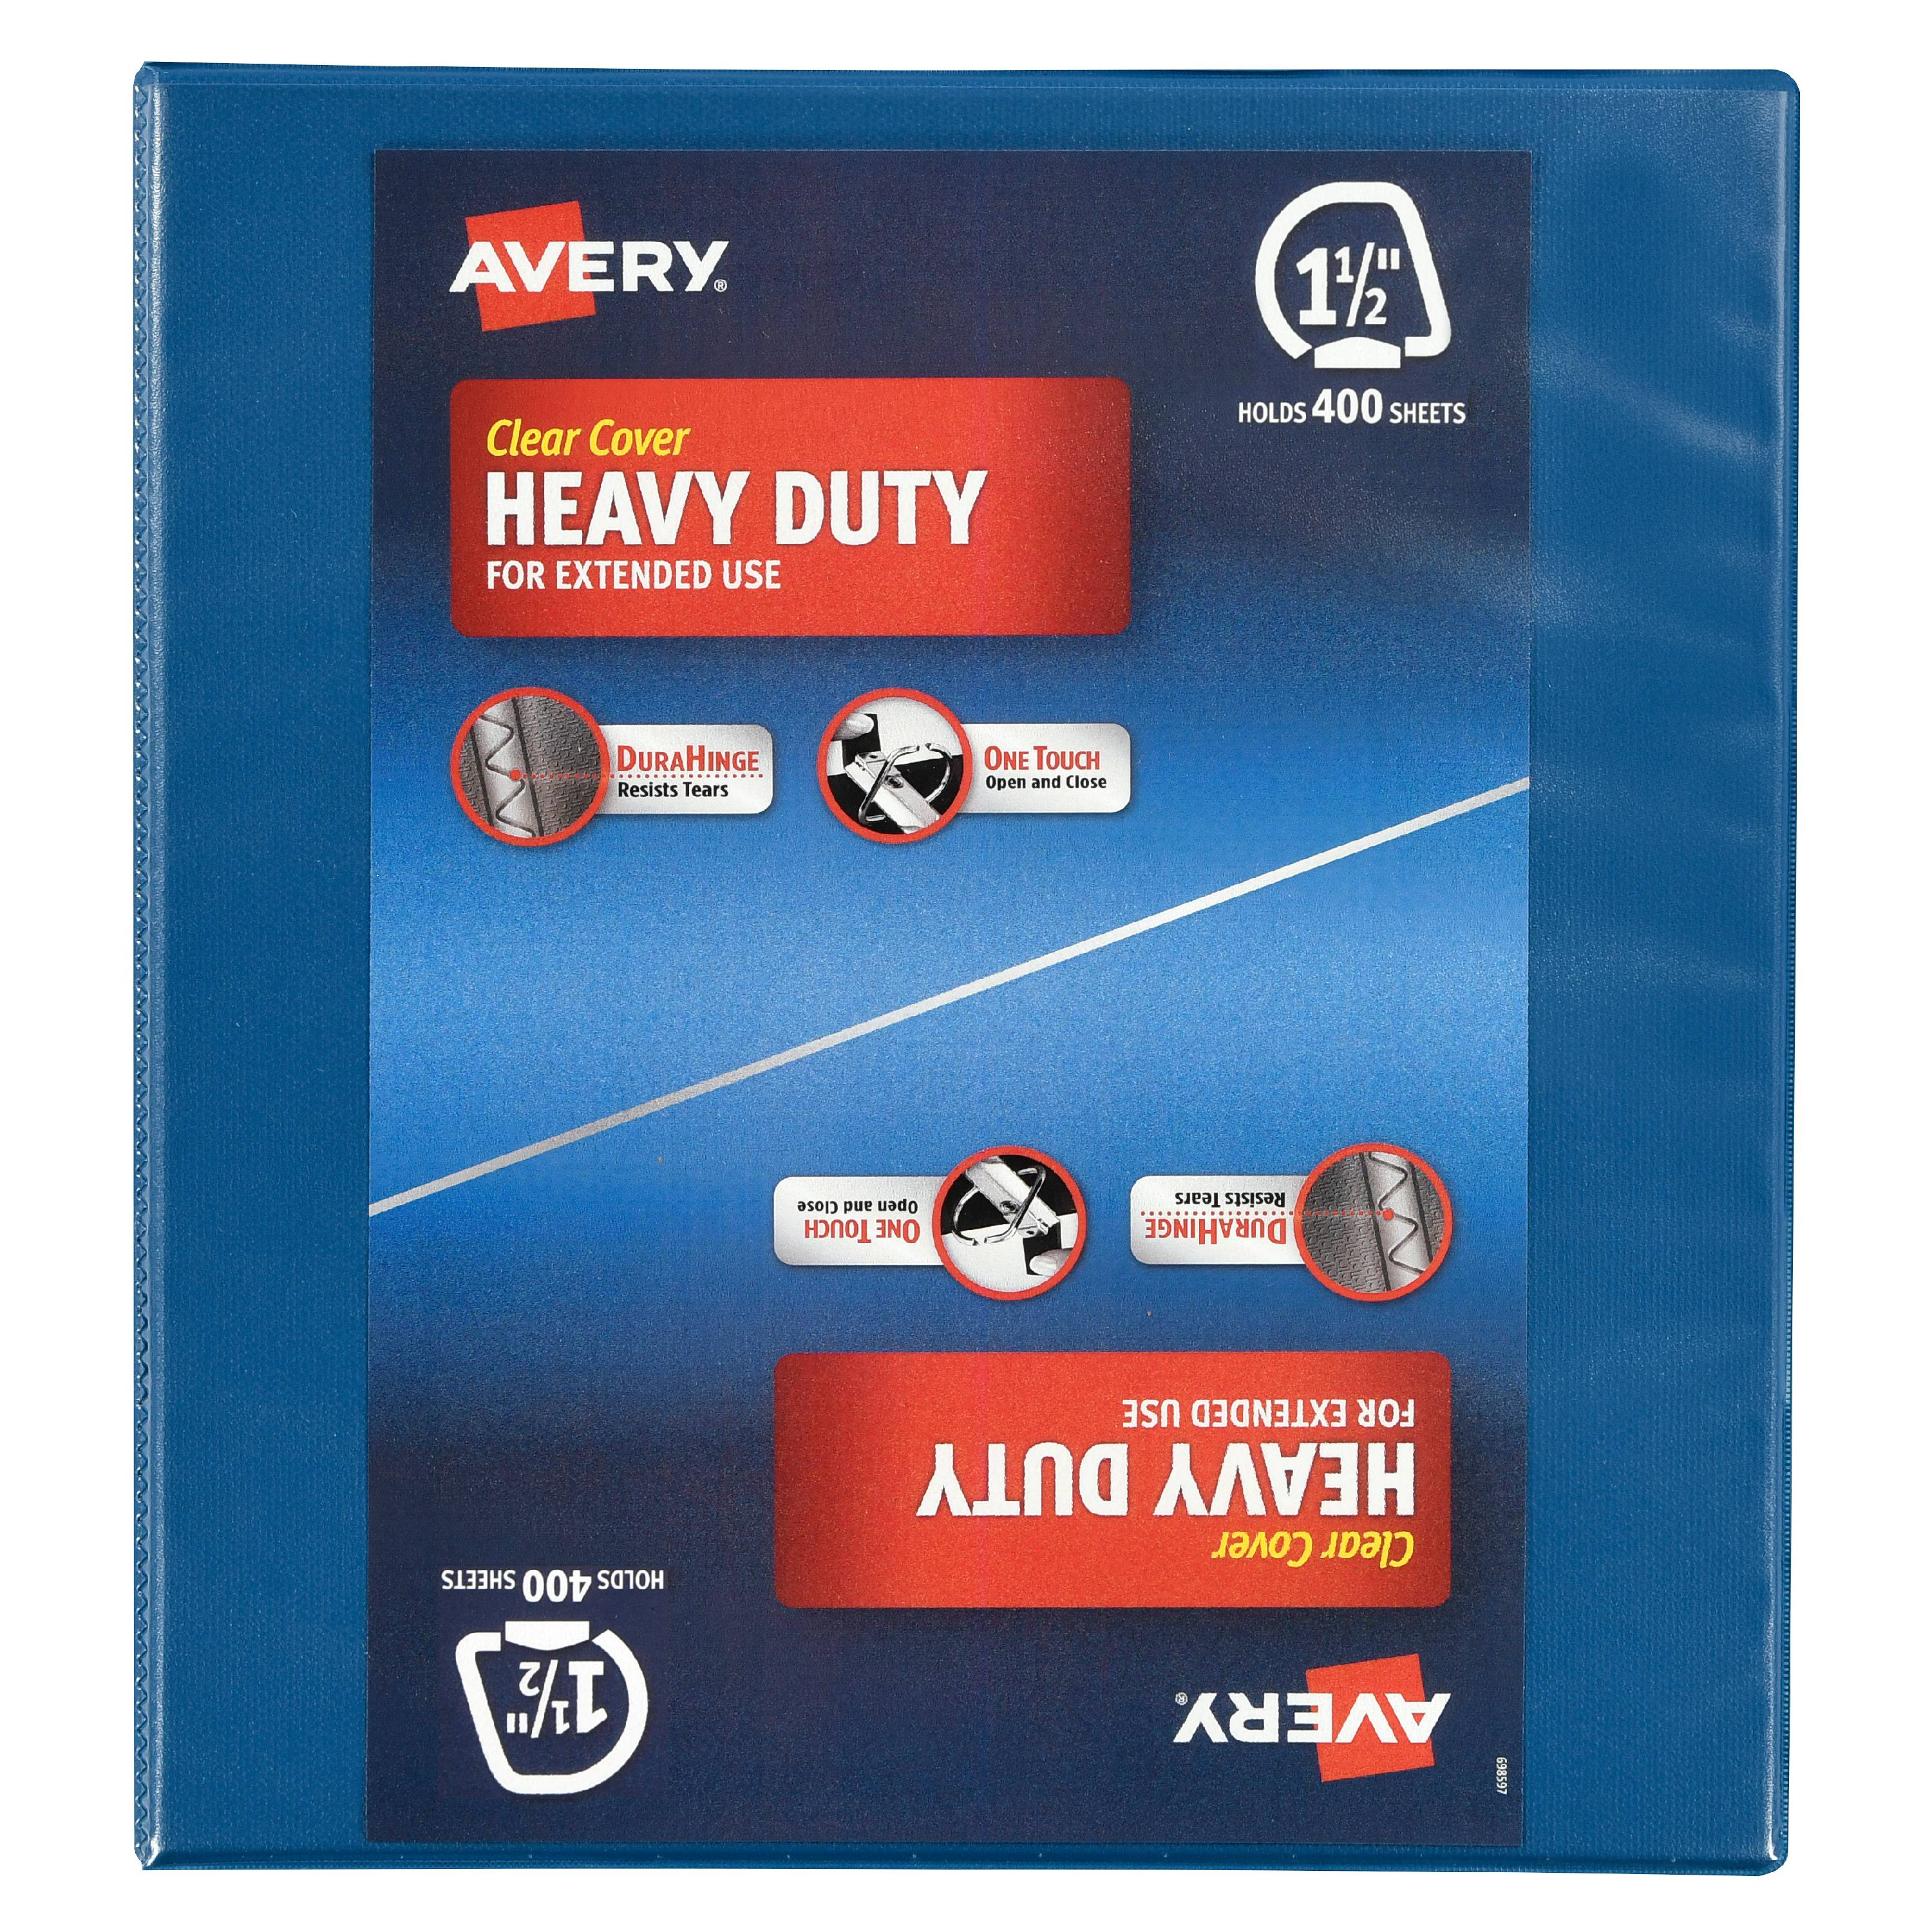 "Avery Clear Cover 1 1/2"" Heavy Duty Binder"